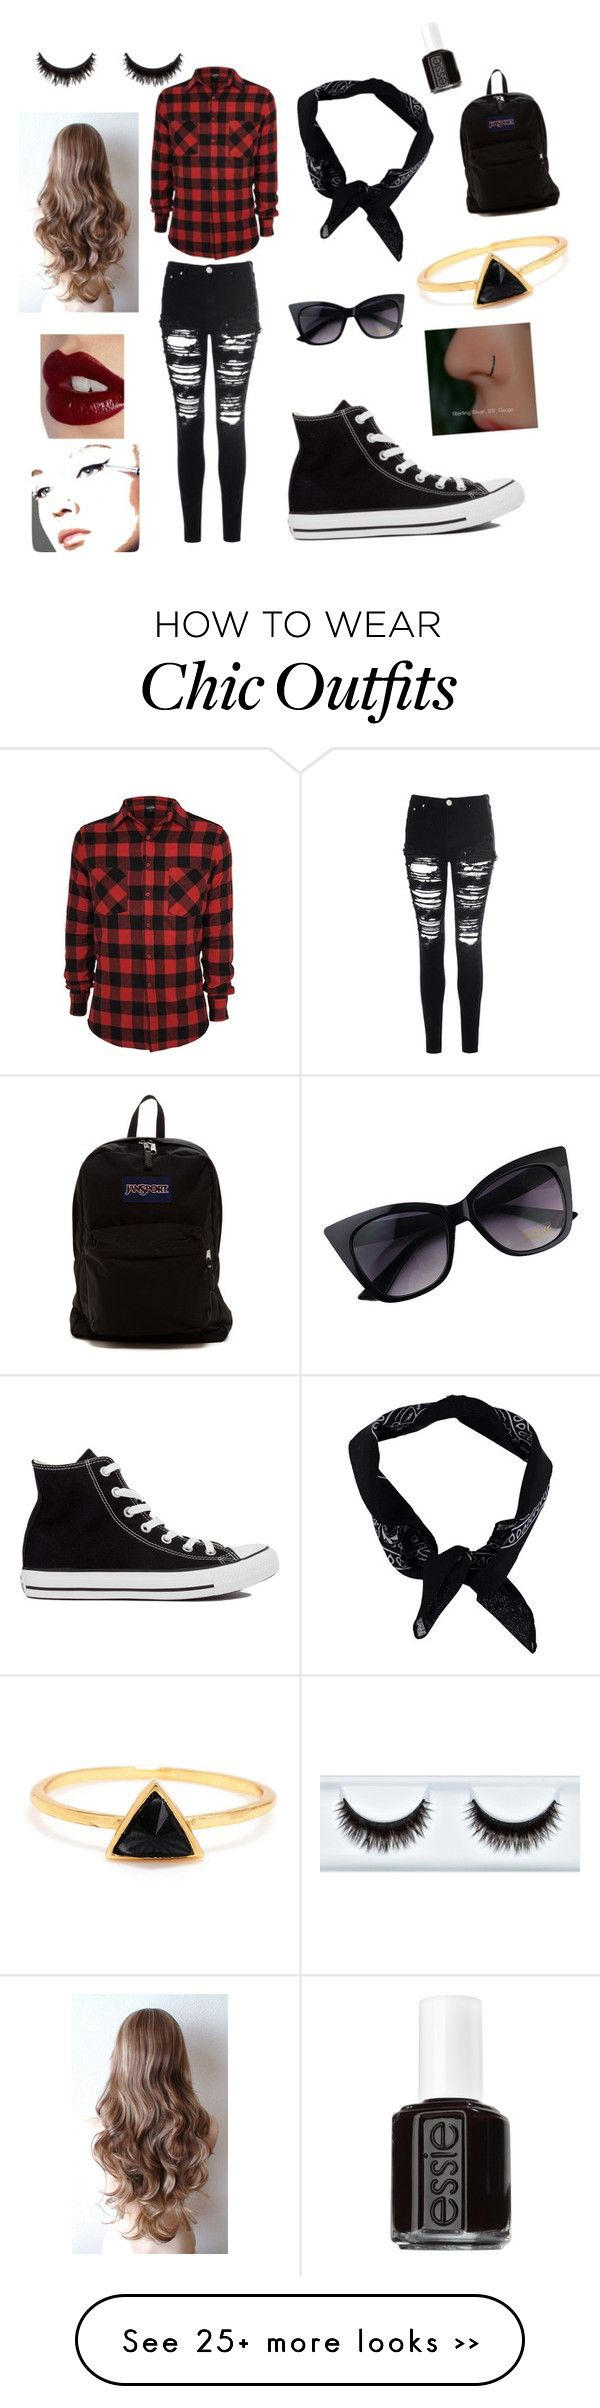 """Rock & Roll Chic"" by monkeygirlsyd on Polyvore"